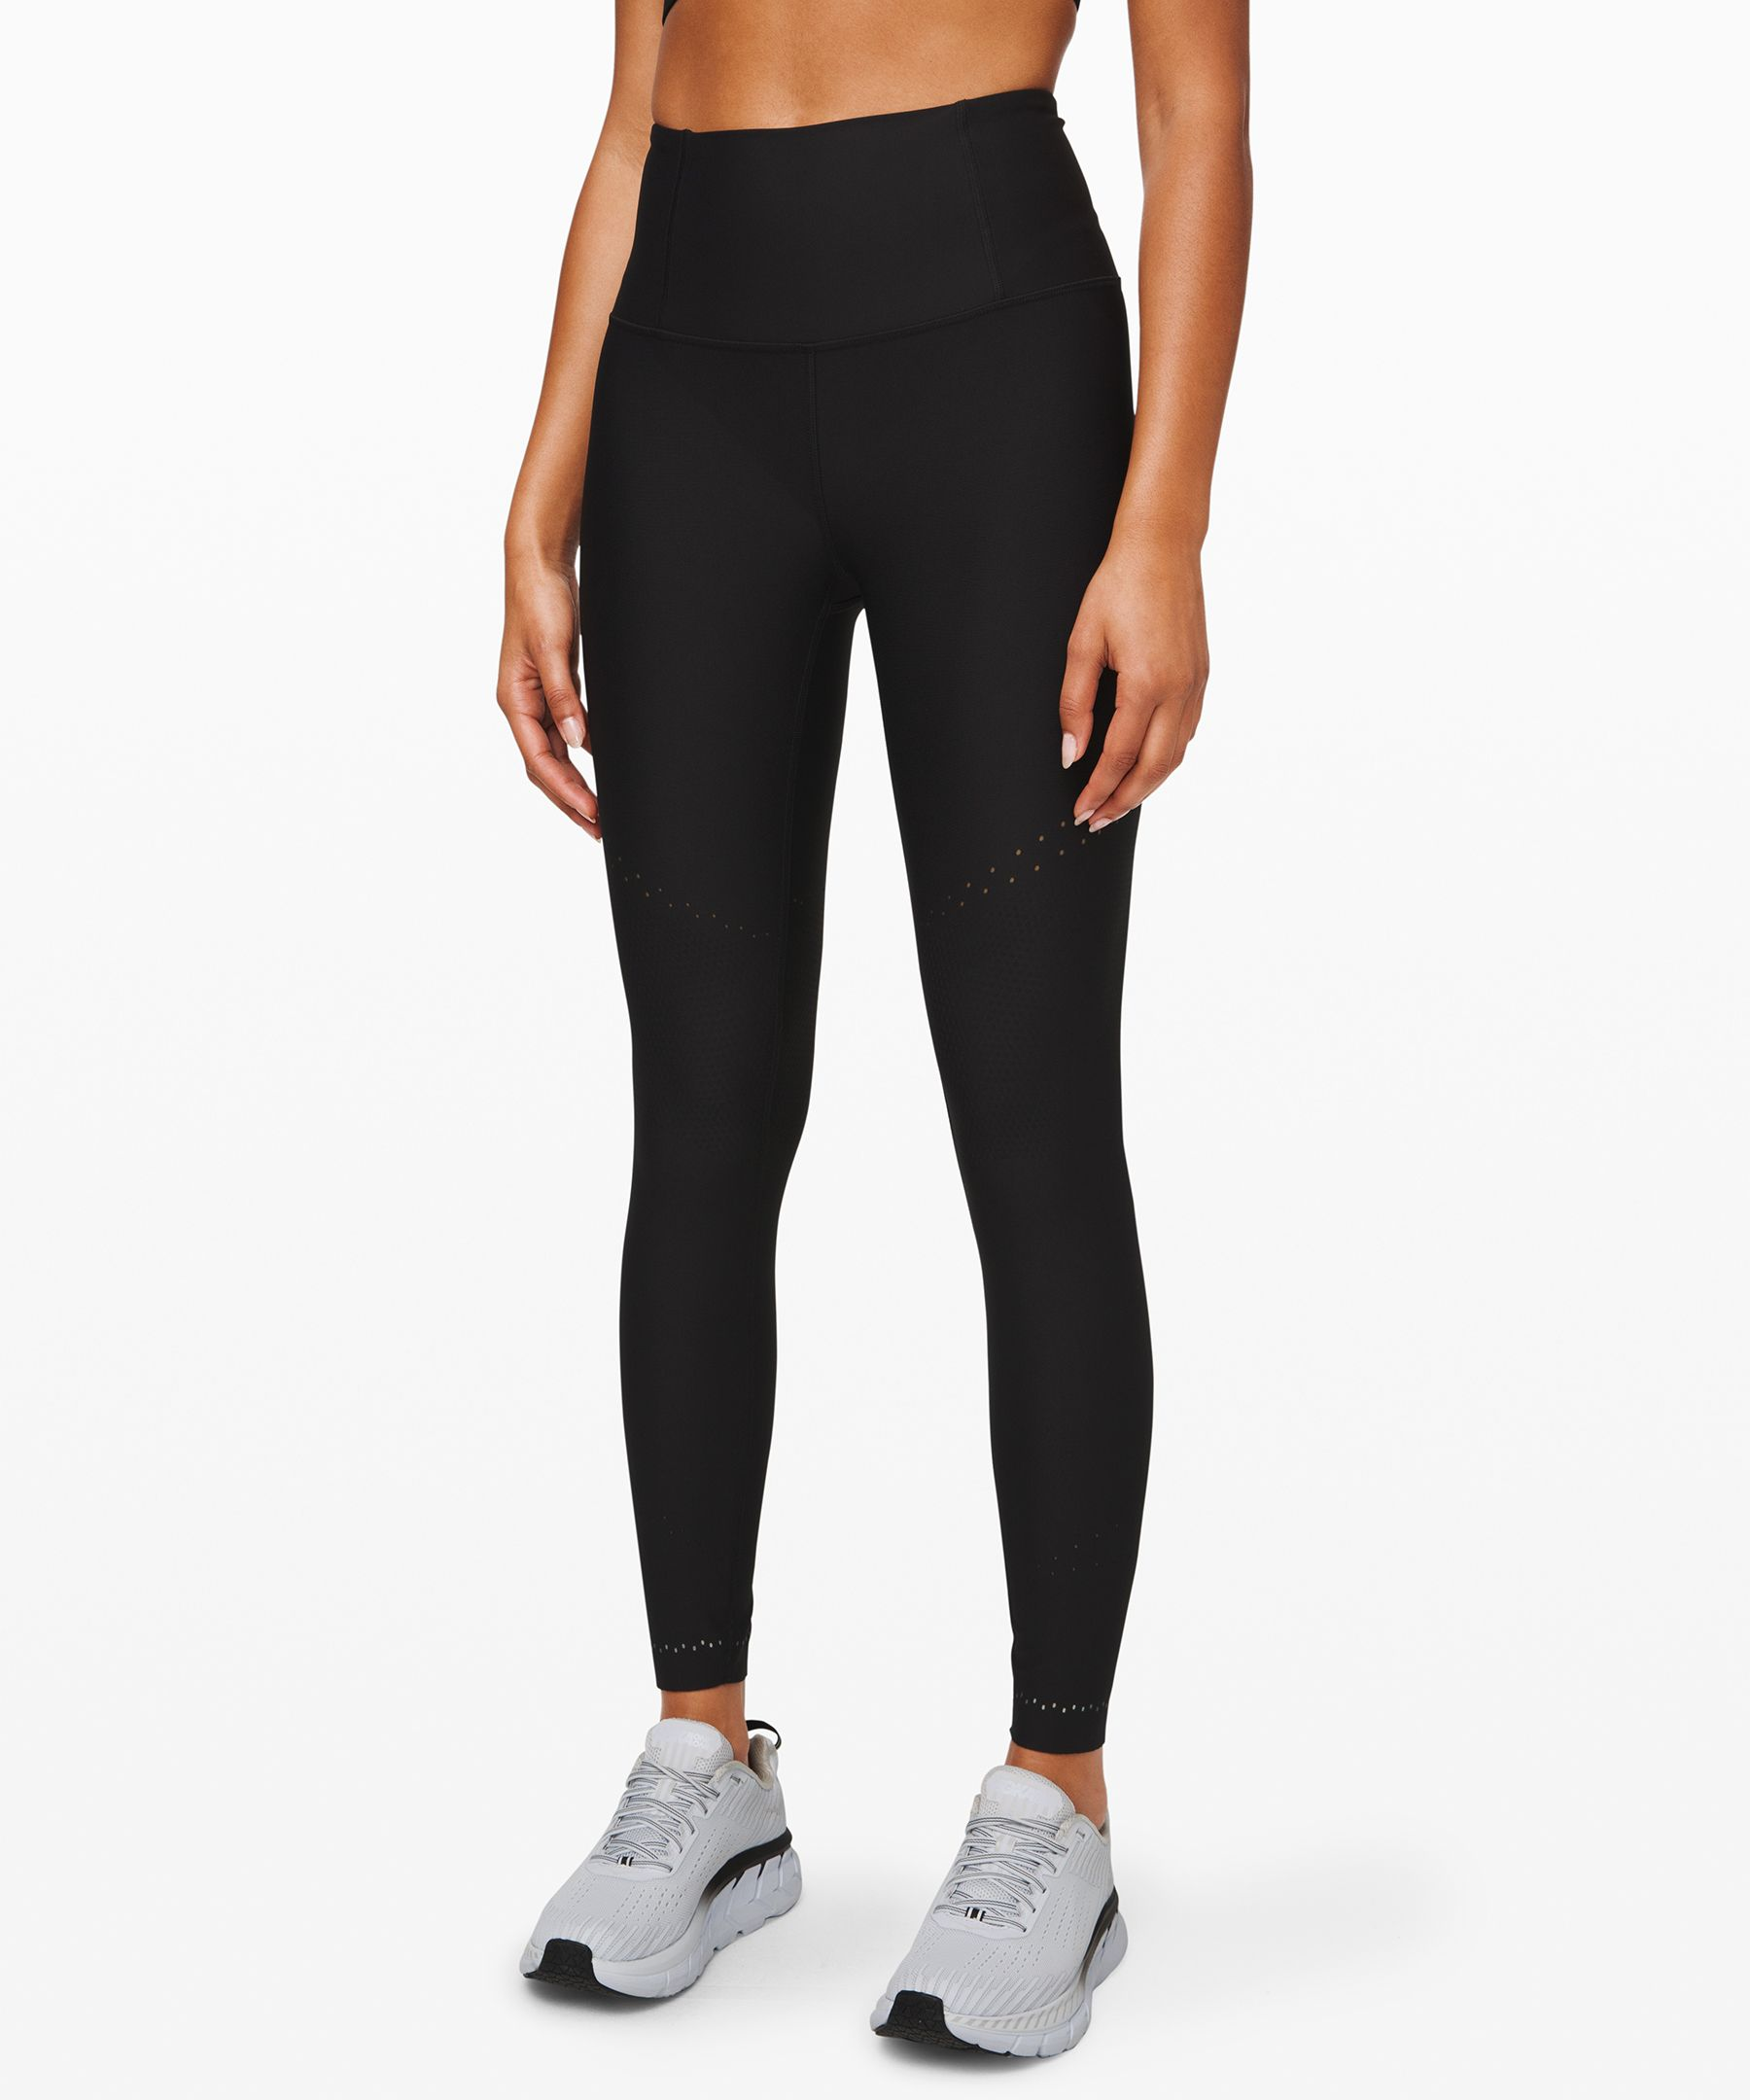 Zone in, run strong. With  seamlessly knit zones of  compression and ventilation,  these breathable tights  support your muscles without  restricting your stride.